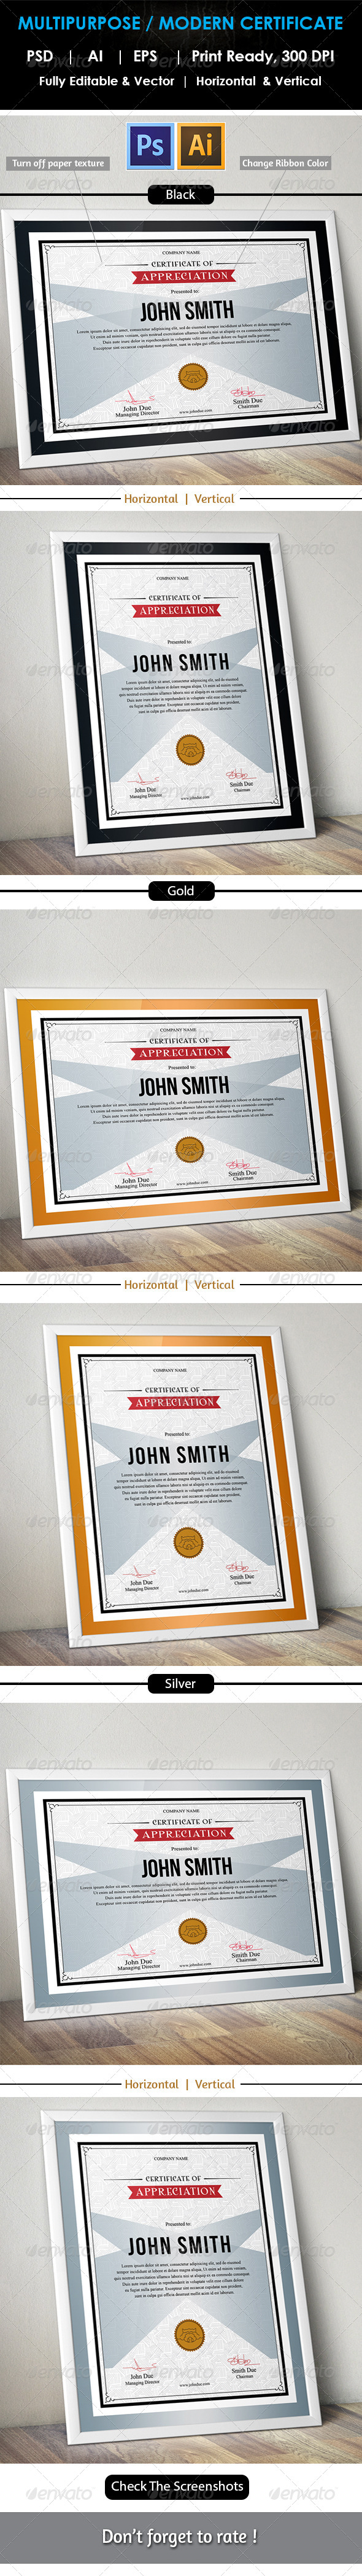 GraphicRiver Simple Multipurpose Certificate GD006 7777554